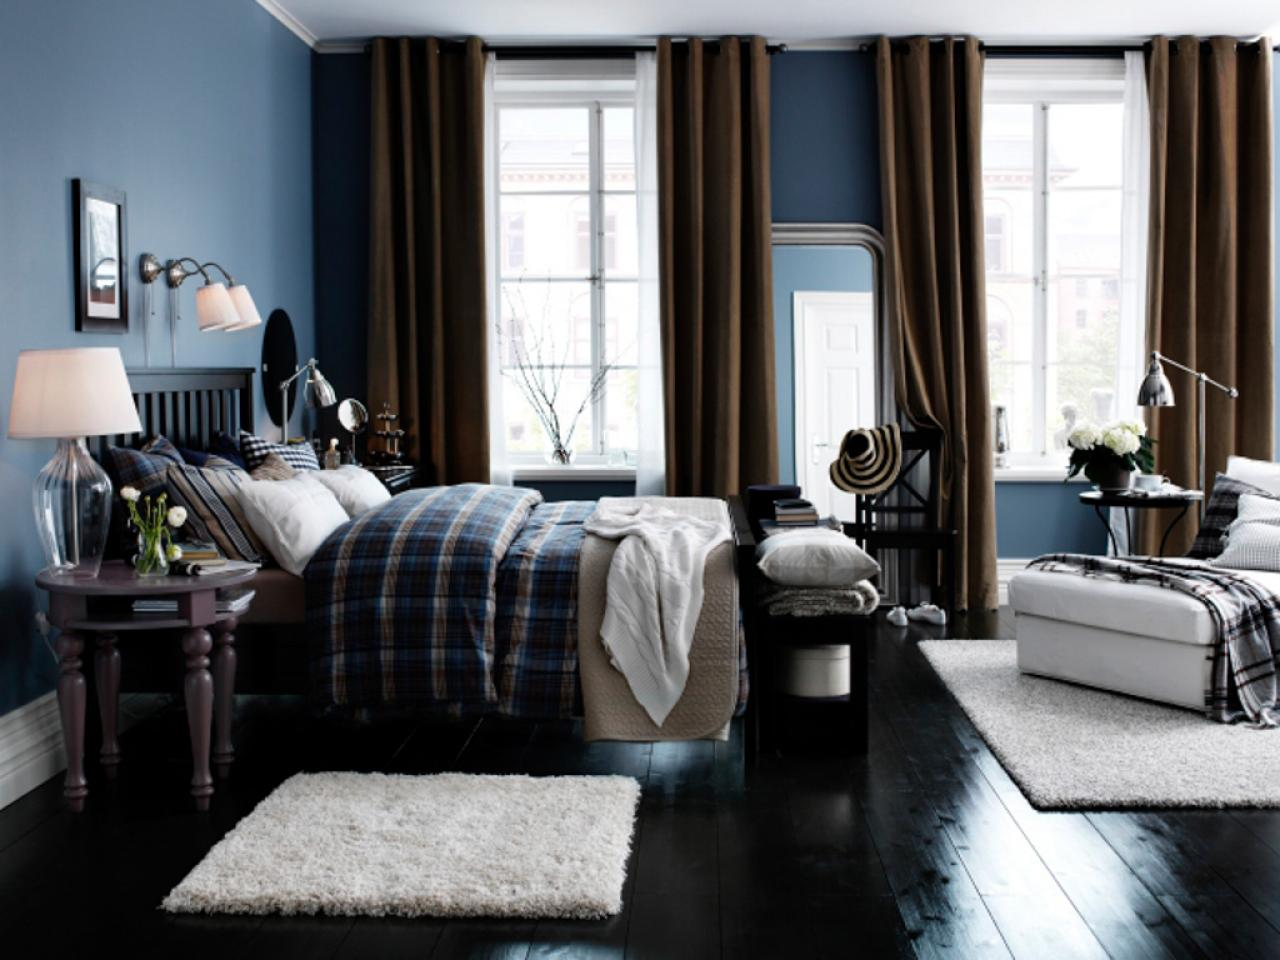 Master Bedroom Color Combinations: Pictures, Options & Ideas ...